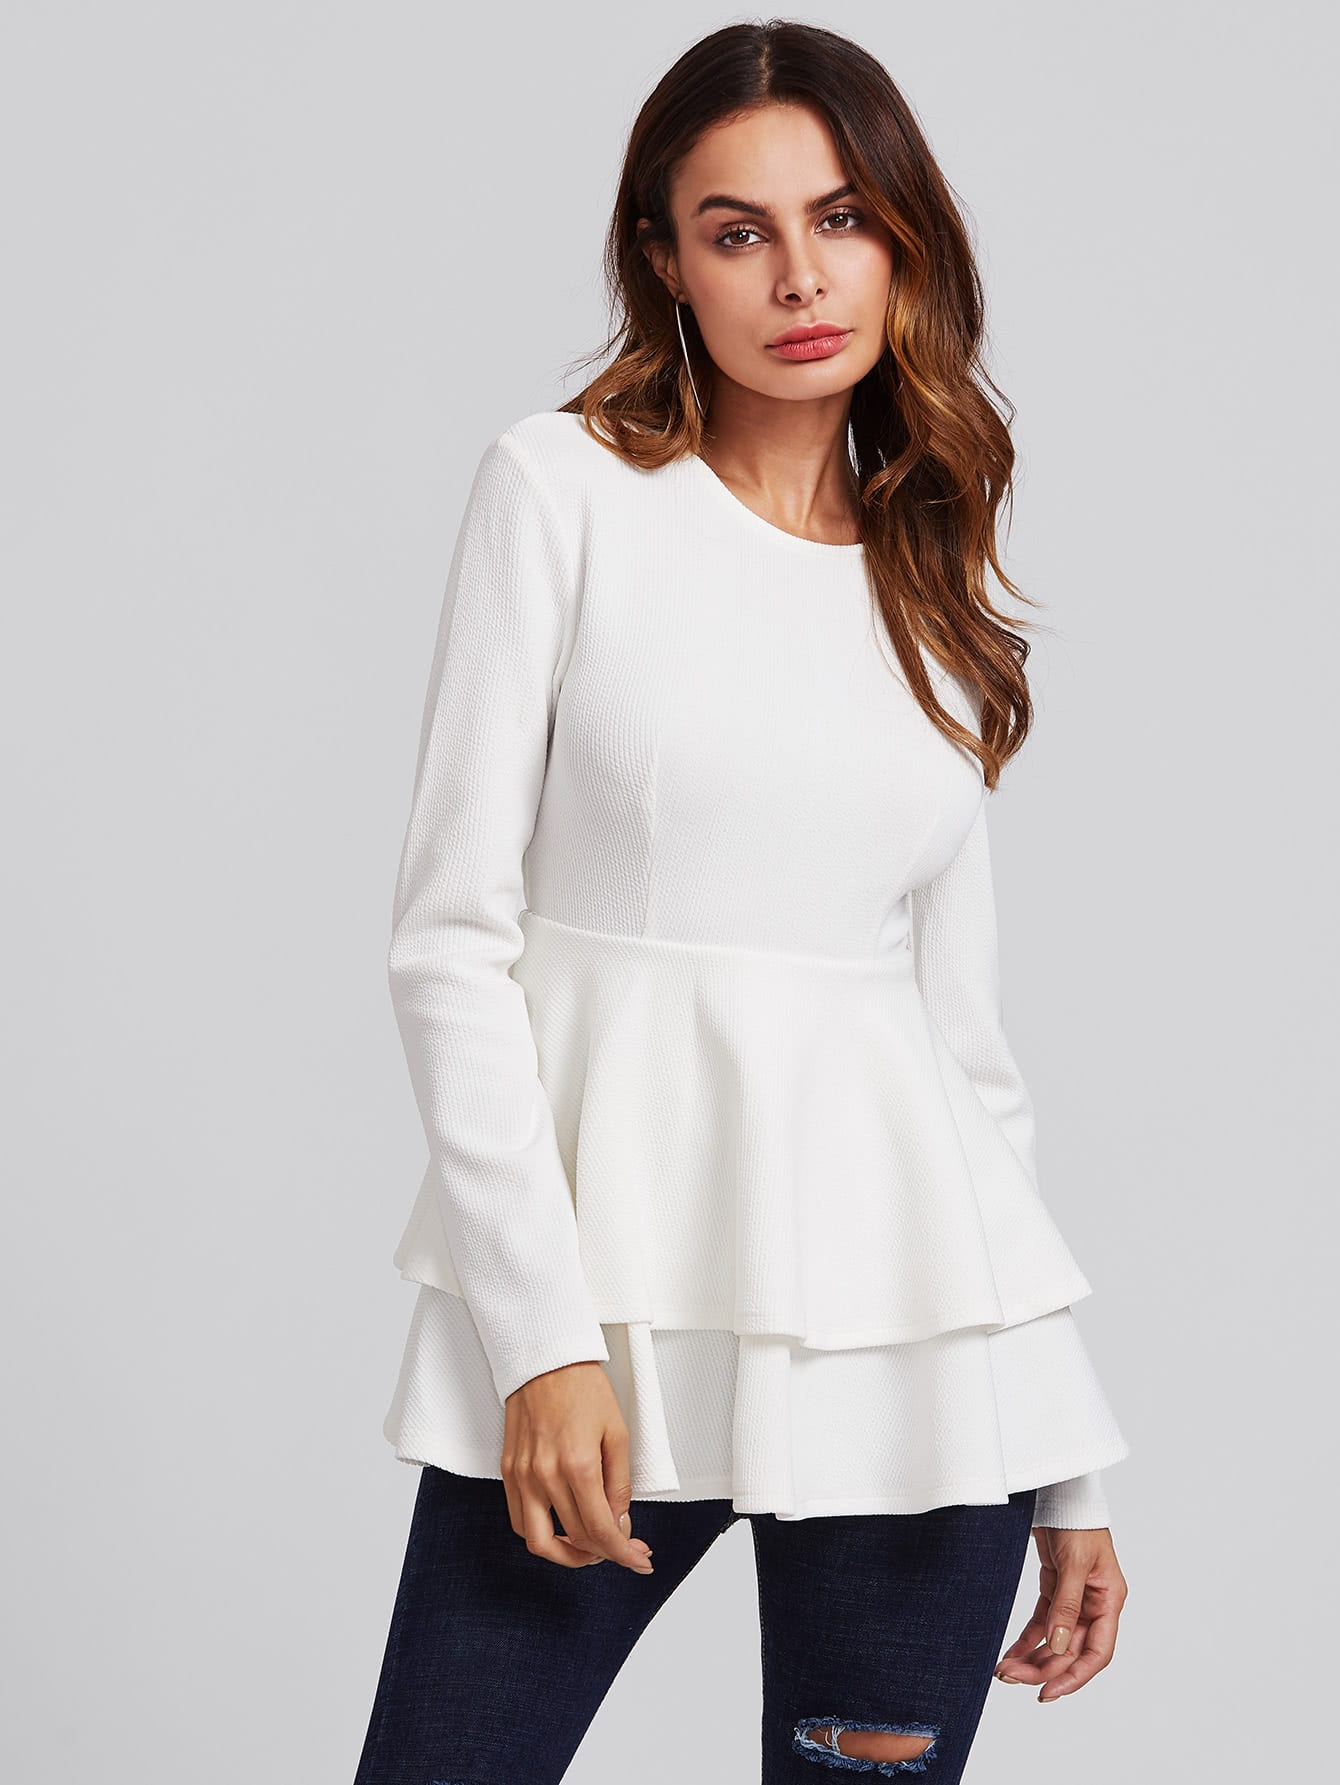 Layered Flounce Trim Ribbed Top blouse171017720